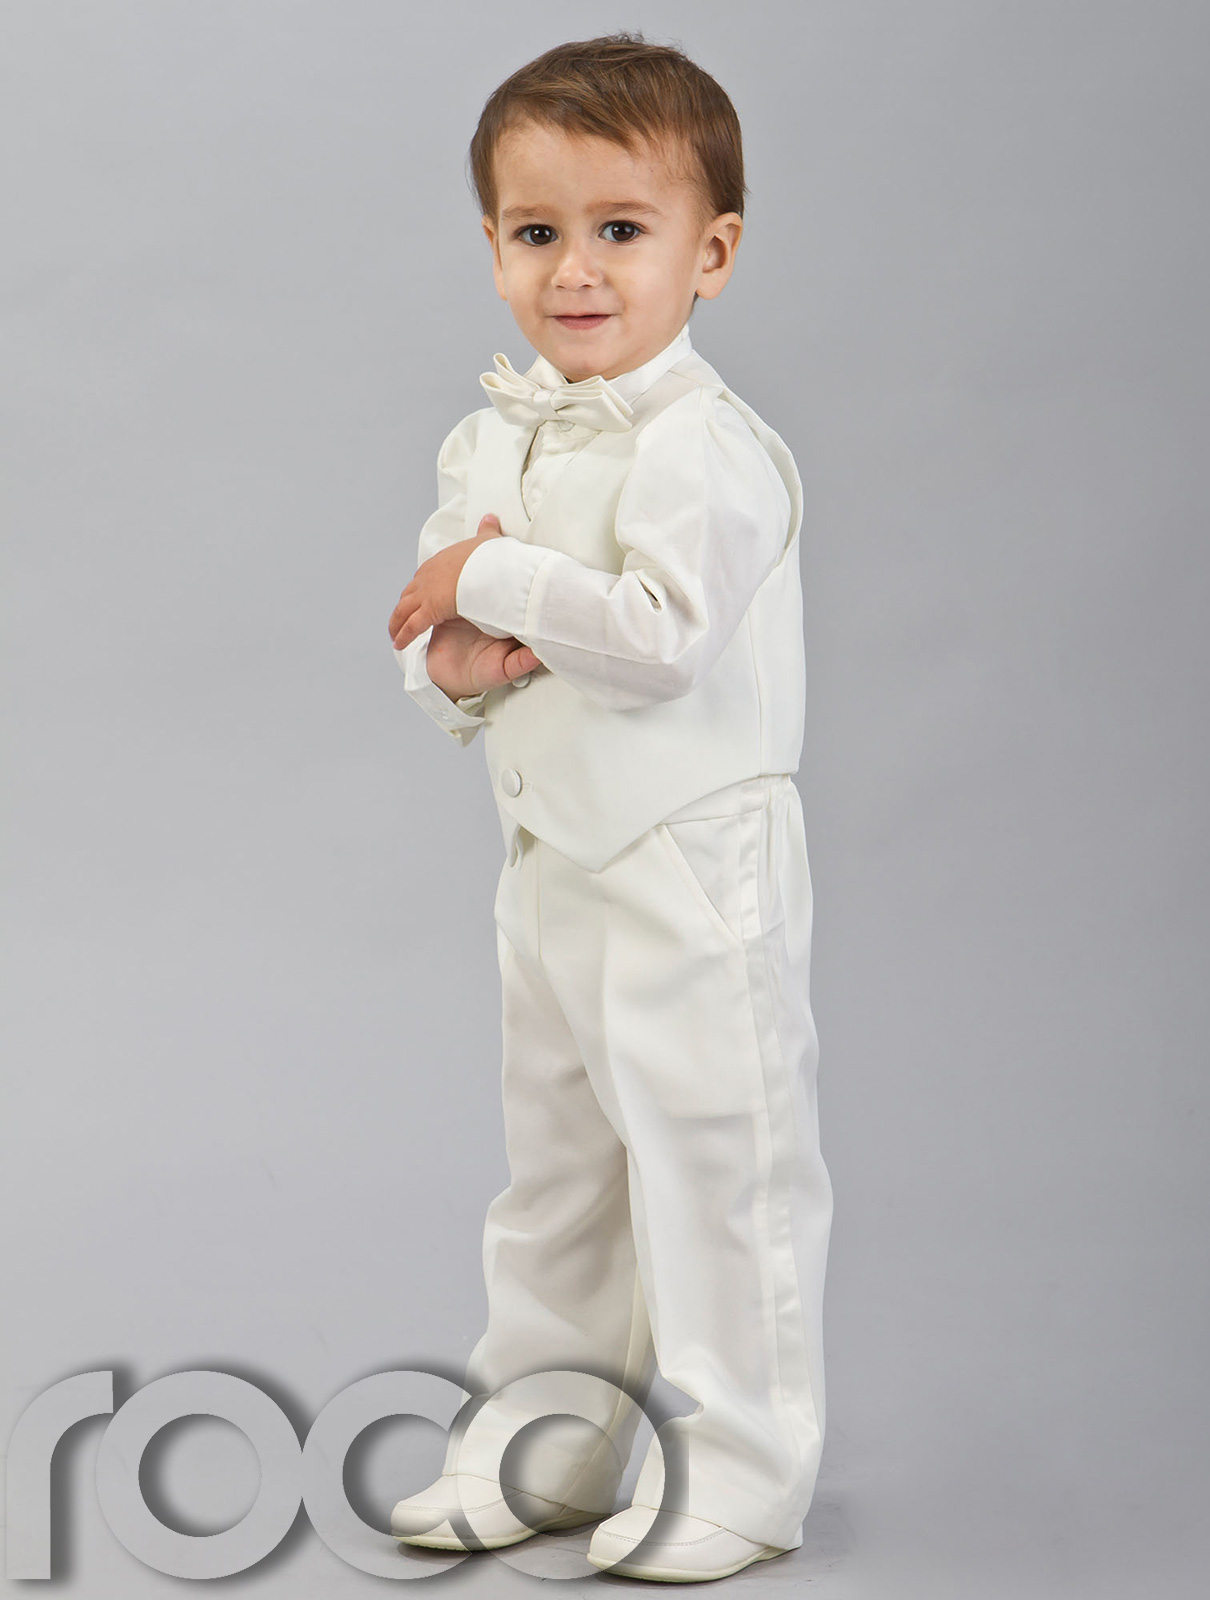 You searched for: baby boy tuxedo! Etsy is the home to thousands of handmade, vintage, and one-of-a-kind products and gifts related to your search. No matter what you're looking for or where you are in the world, our global marketplace of sellers can help you find unique and affordable options. Let's get started!